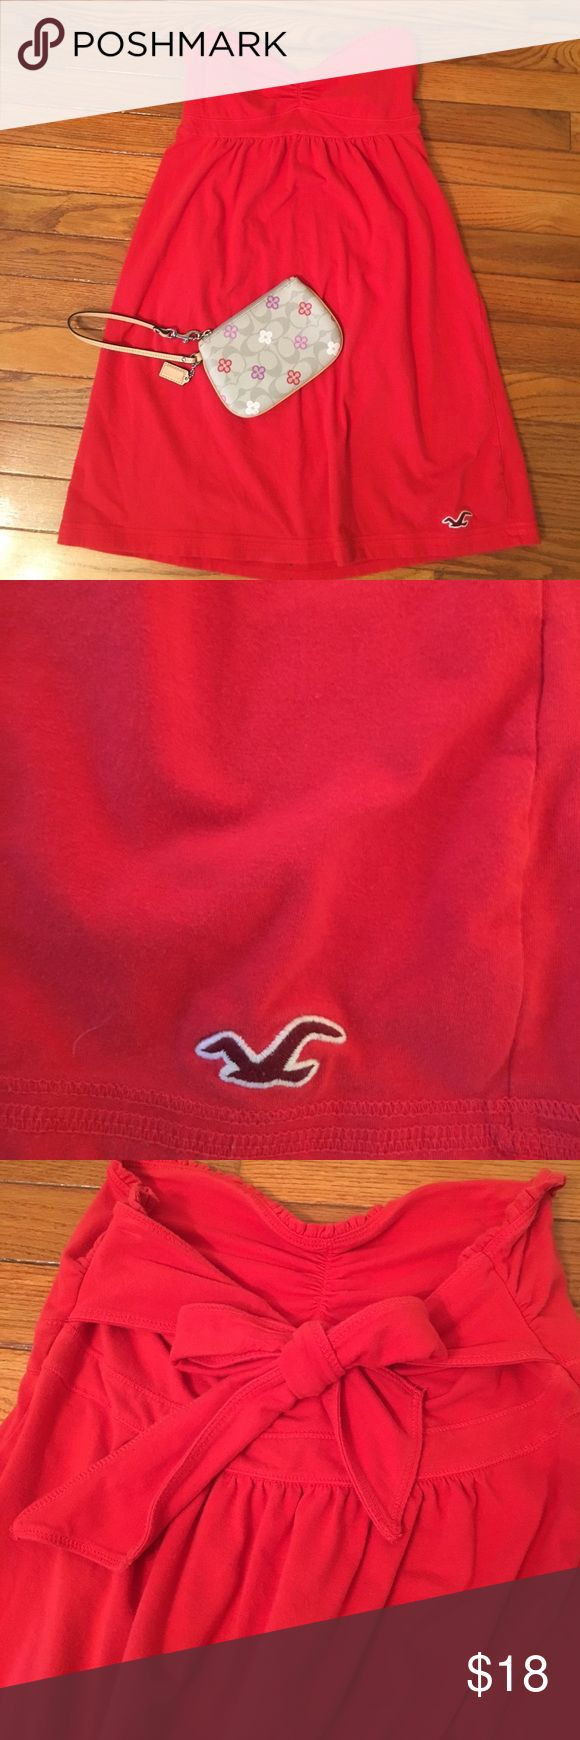 Large Bright Red Strapless Hollister Dress Lightly worn Large Hollister dress! Bow detail on back! Runs small. Perfect for summer! Hollister Dresses Mini